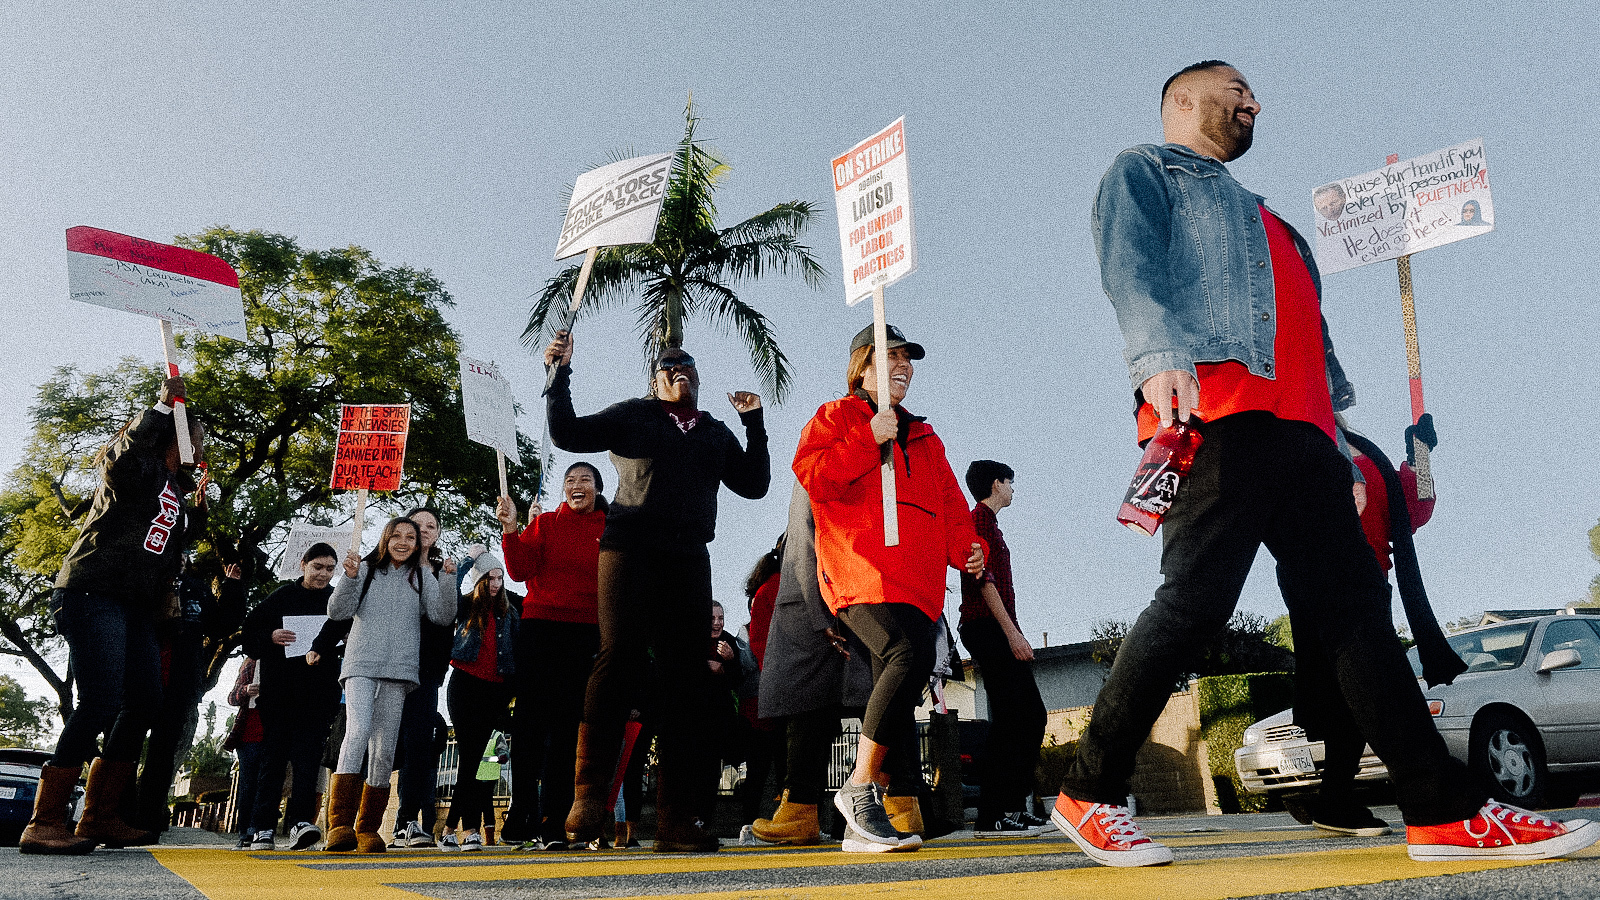 Why Are Teachers Striking? It's Time to Listen to Their Greatest Concerns